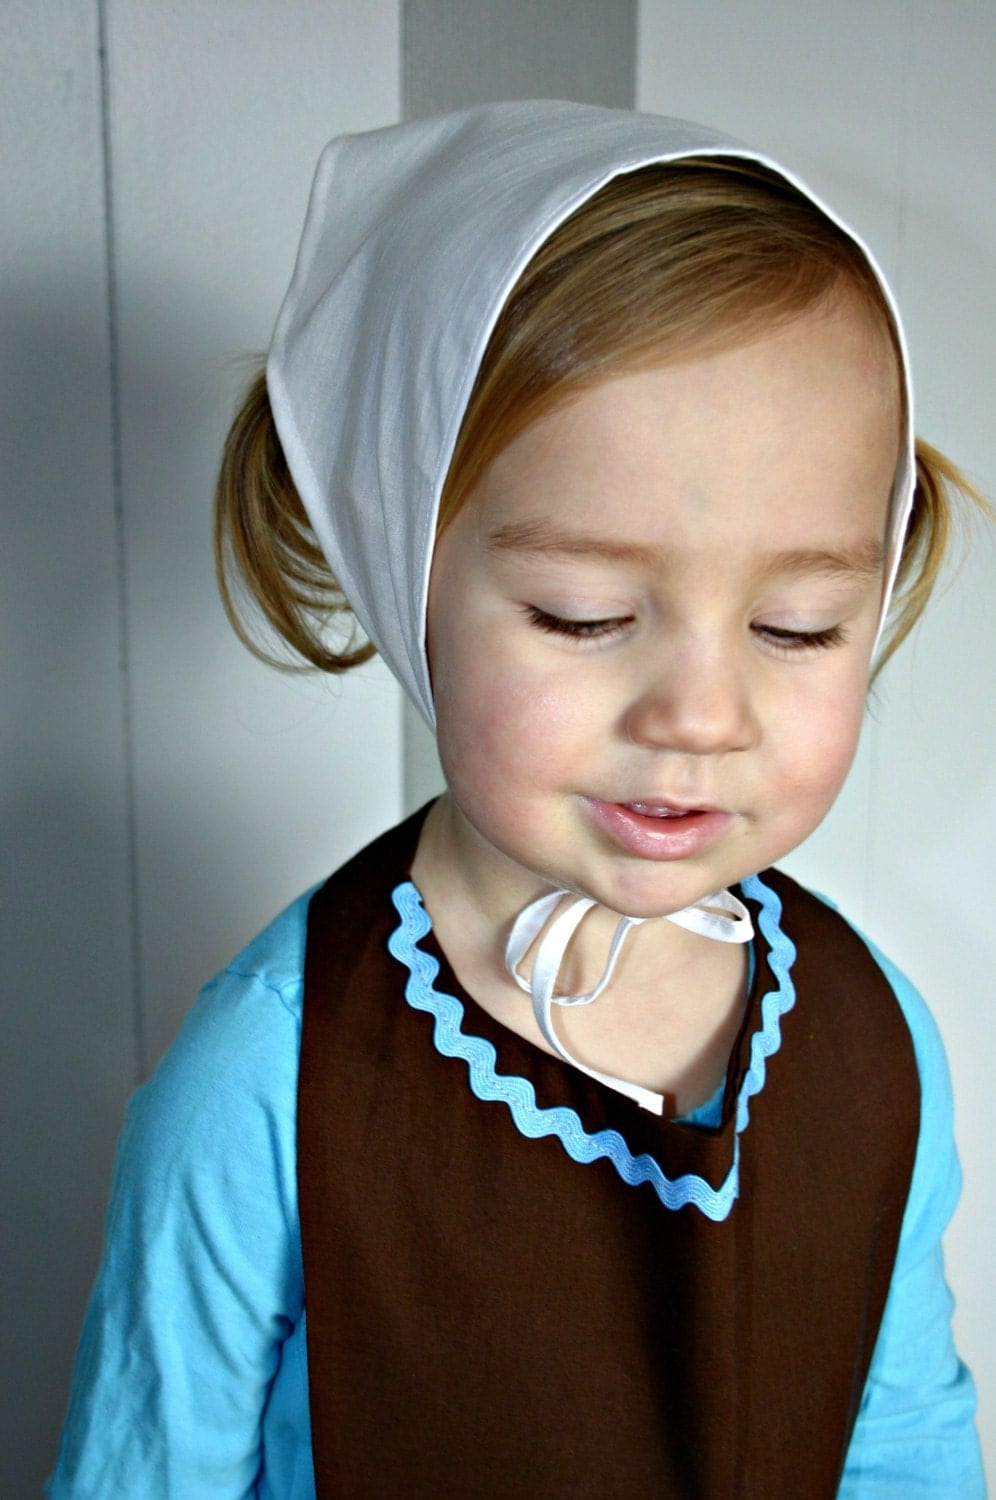 Child Kerchief Head Covering Scarf Cap Hat By